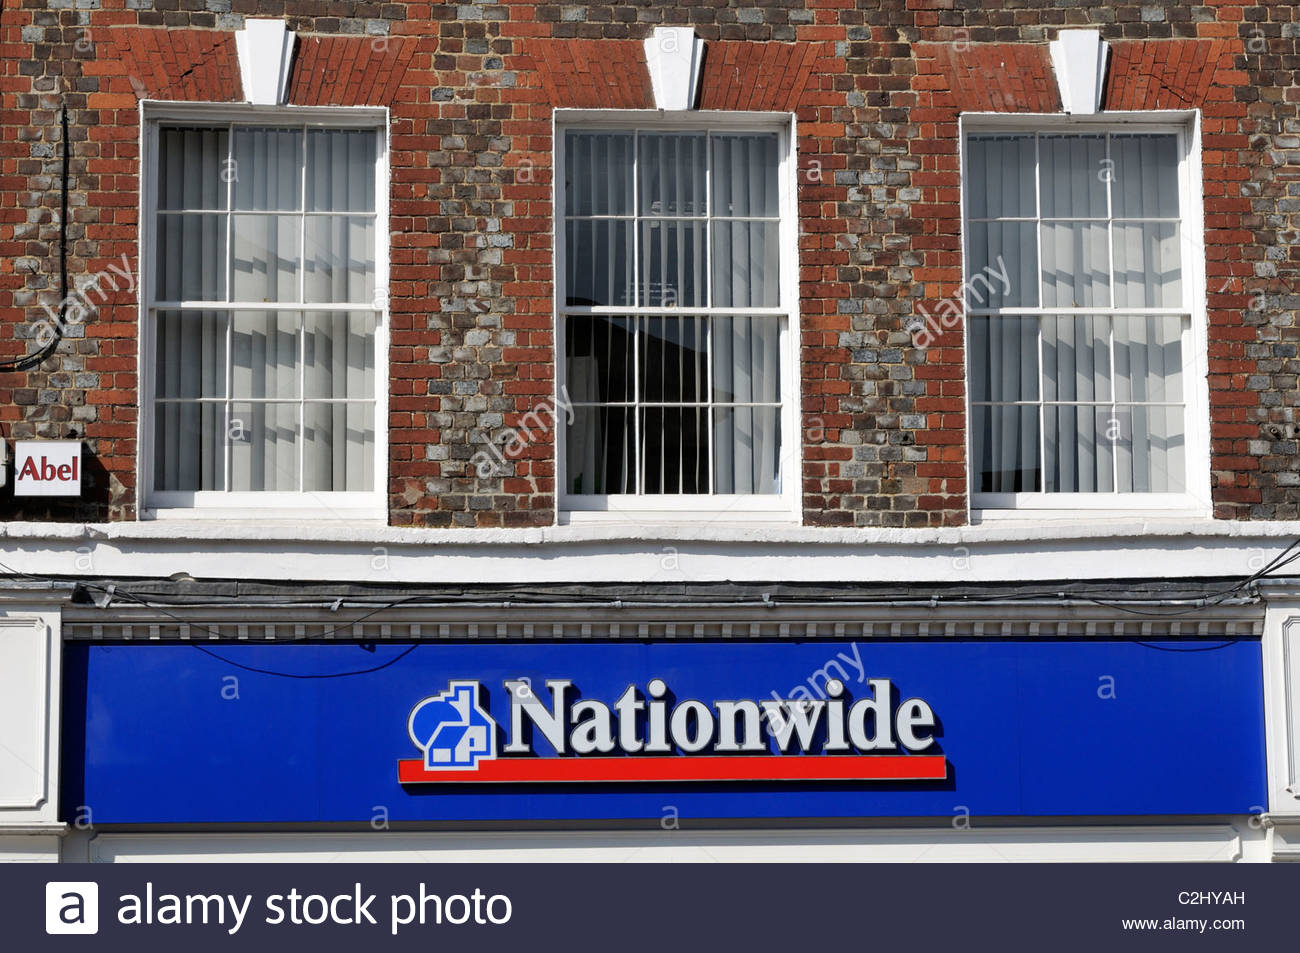 Looking up at the branch of Nationwide Building Society at Blandford Forum in Dorset, England - Stock Image